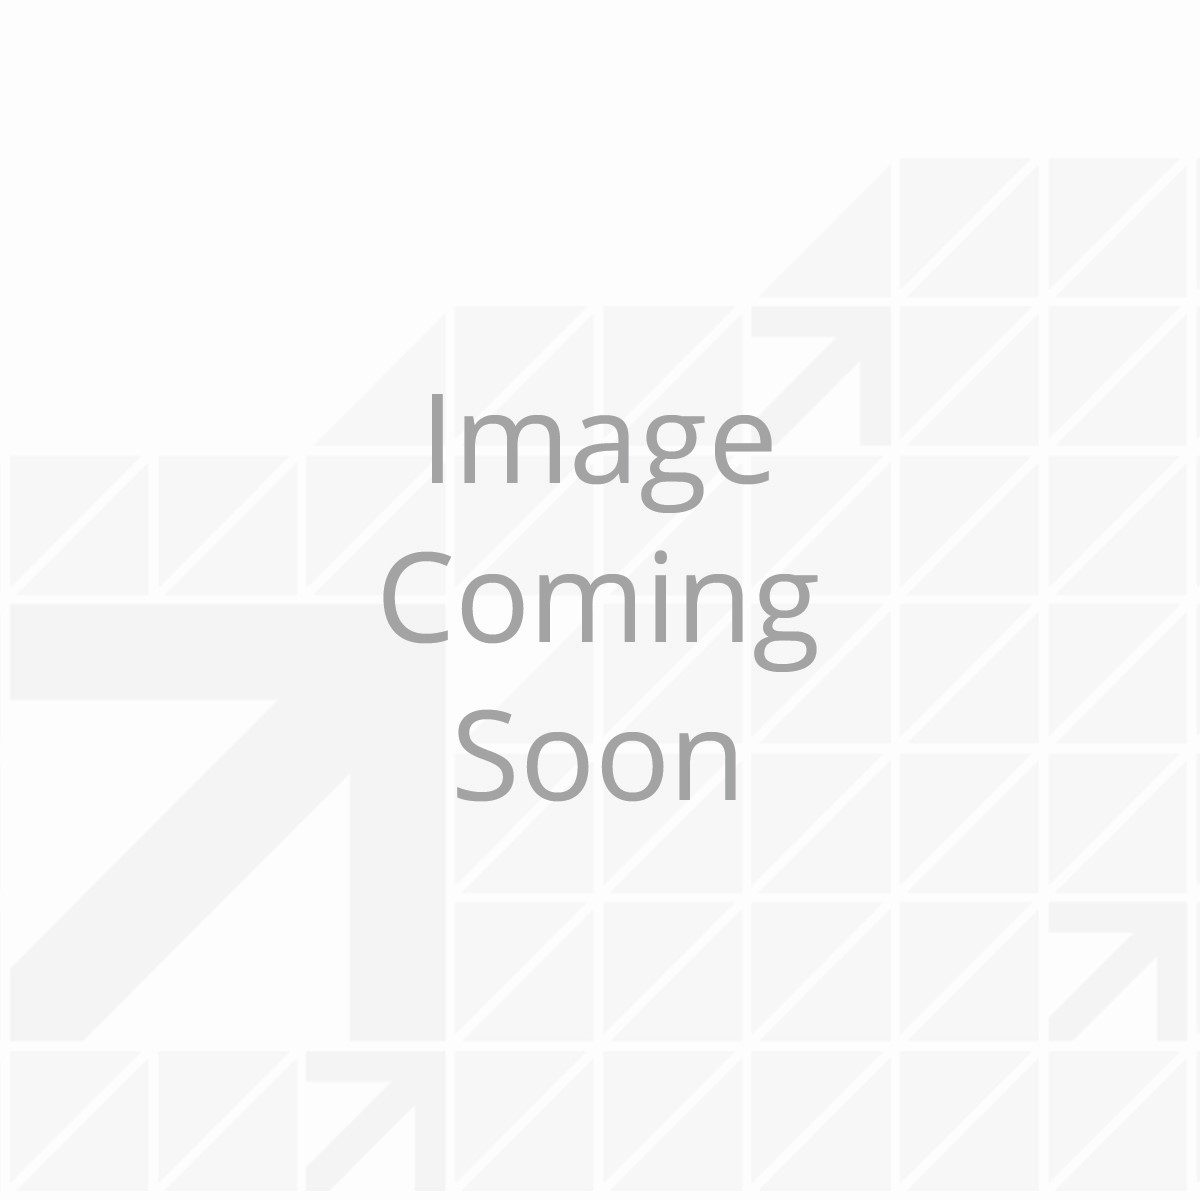 15A Dual USB Charger with Duplex Tamper Resistant Recept - Black